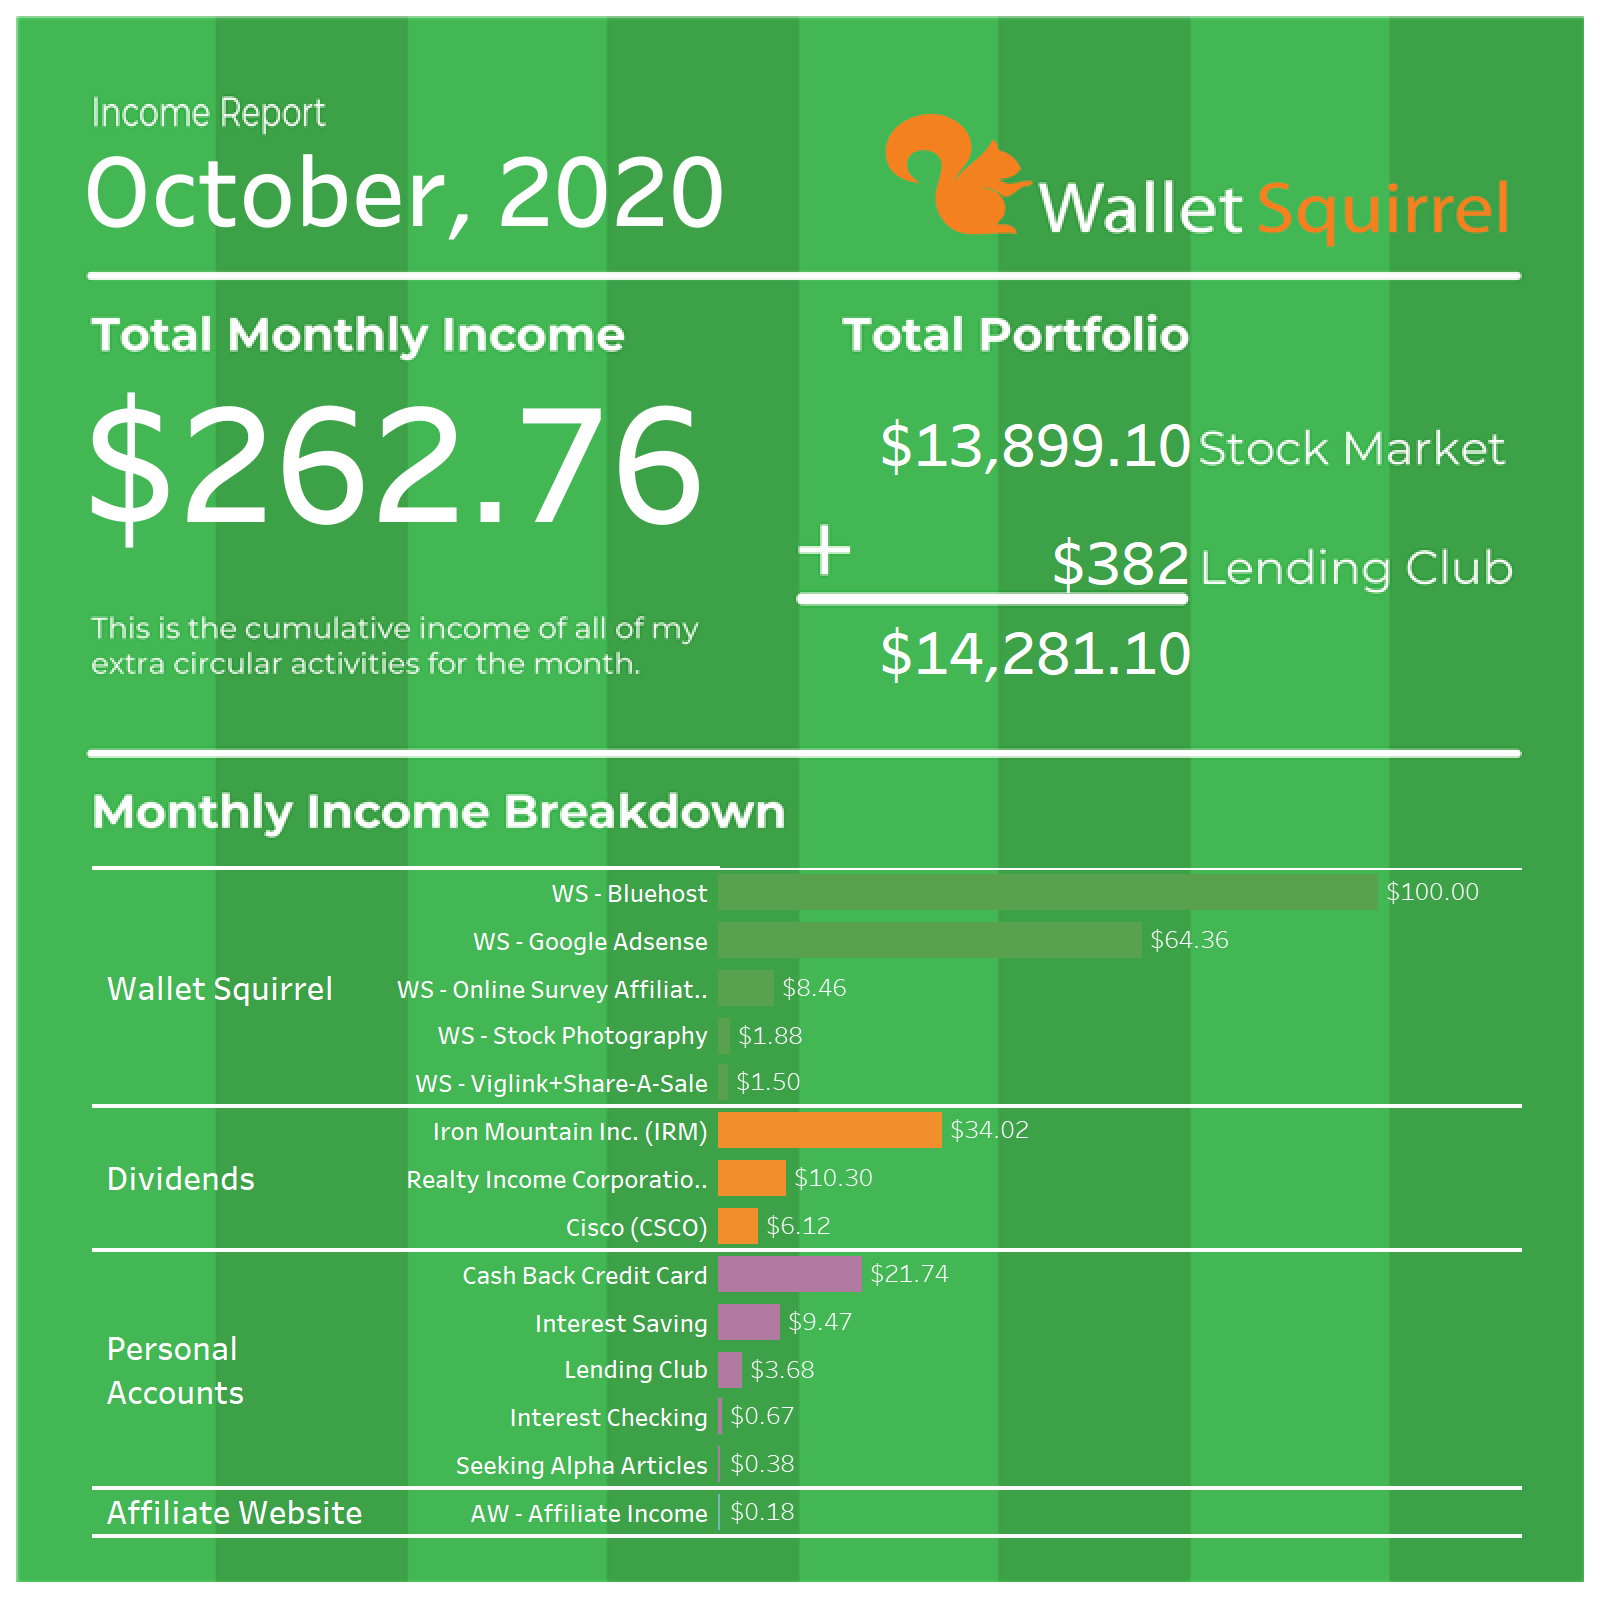 As we wrap up Fall, we continue to provide a transparent look at Wallet Squirrel through another monthly Income Report! These Income Reports are always a favorite because it helps us celebrate everything we've been up for the month. Plus for our readers, it's an incredible peek behind the curtain at running a finance blog. #incomereport #personalfinance